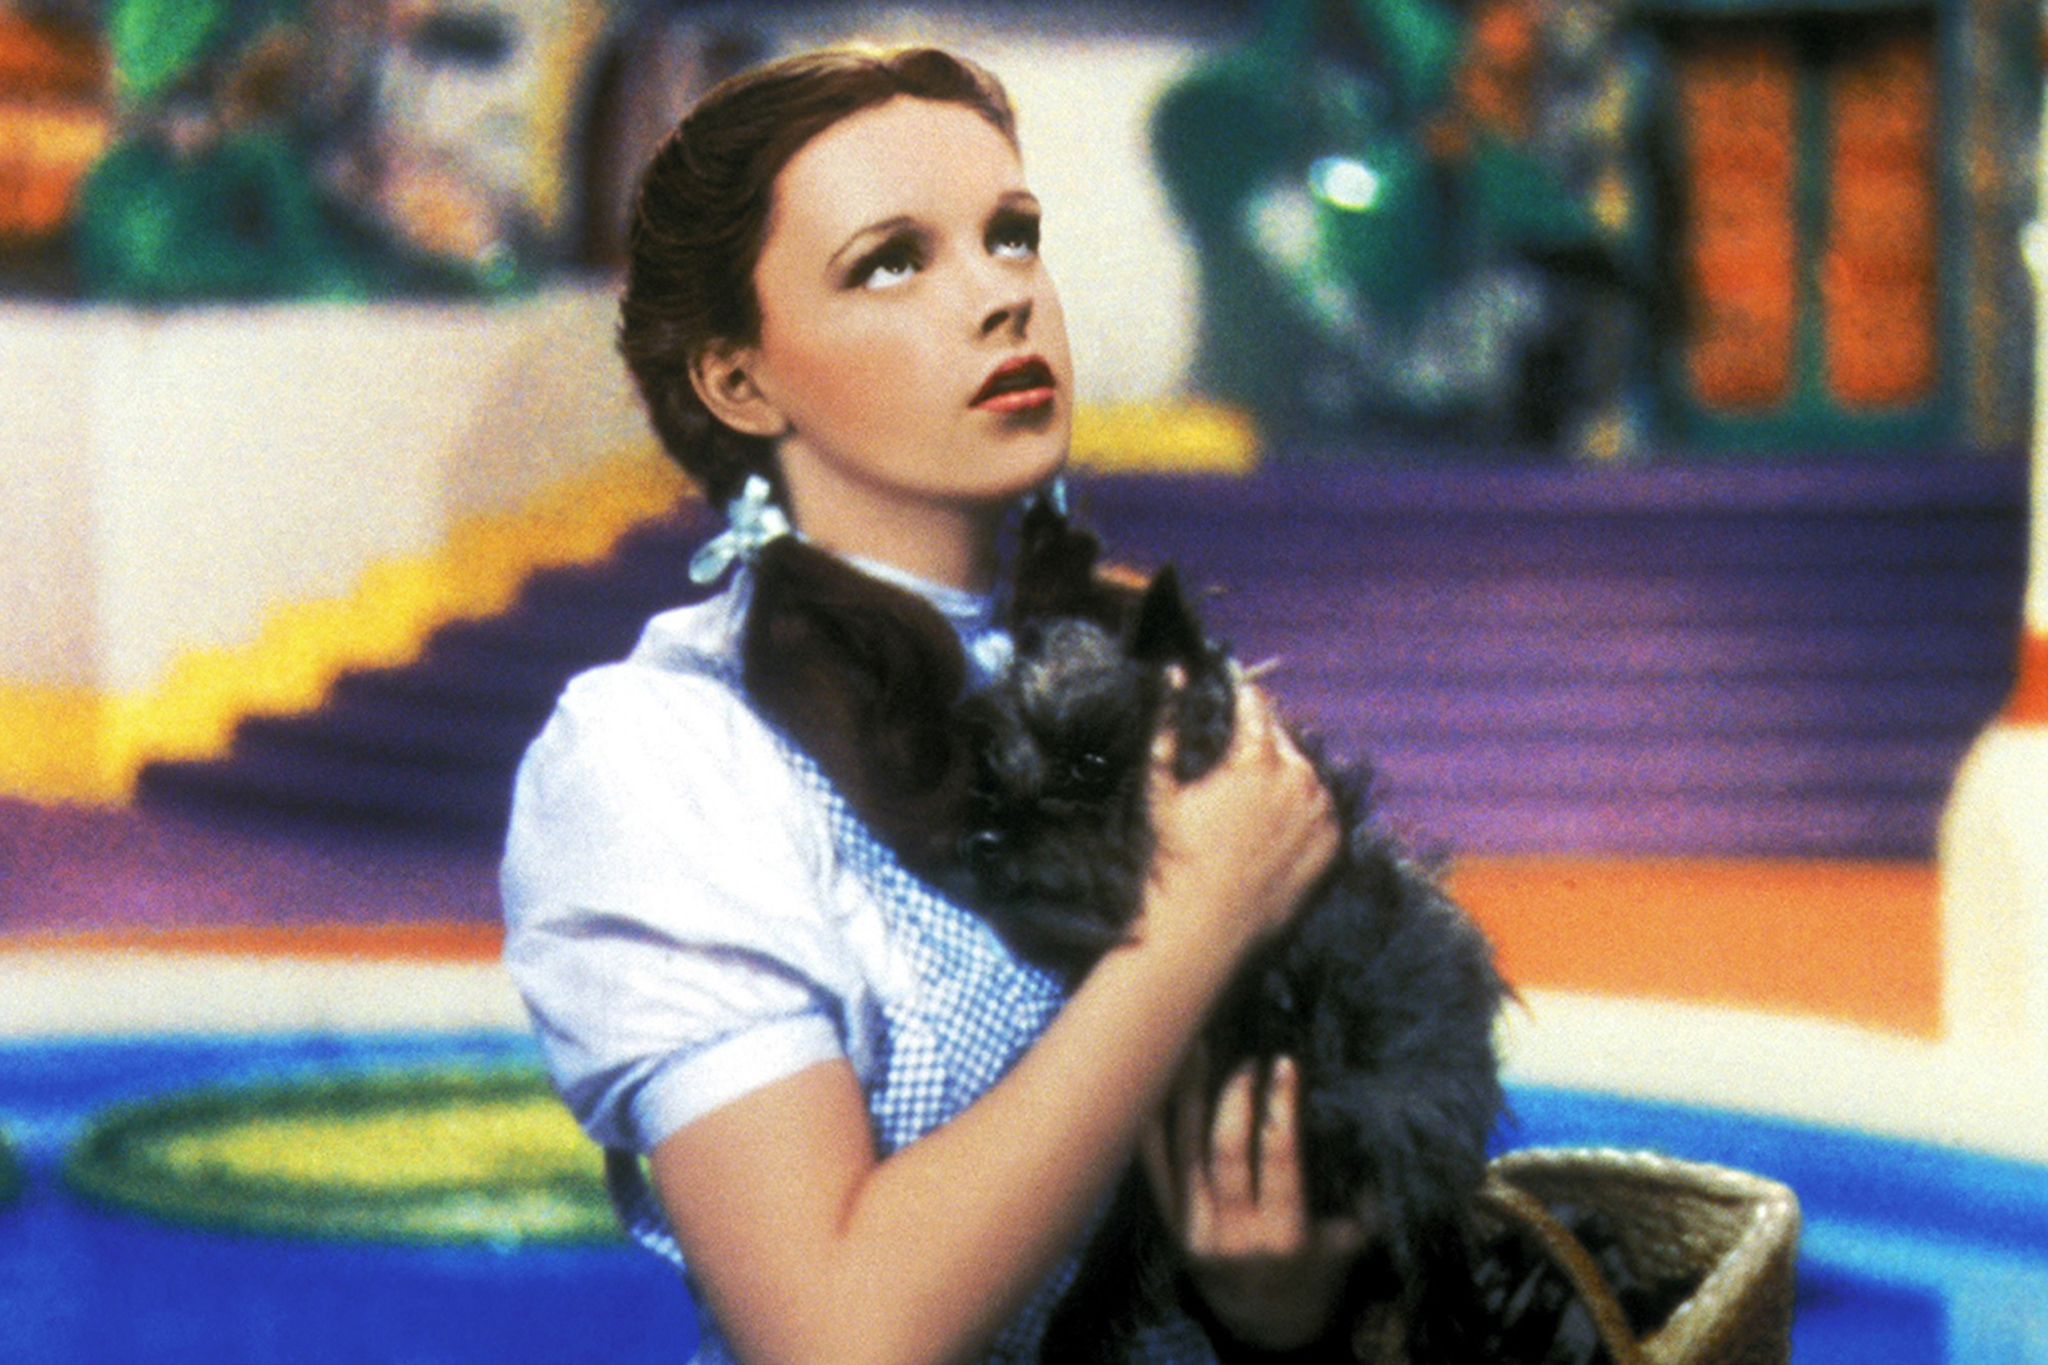 The Wizard of Oz's Judy Garland